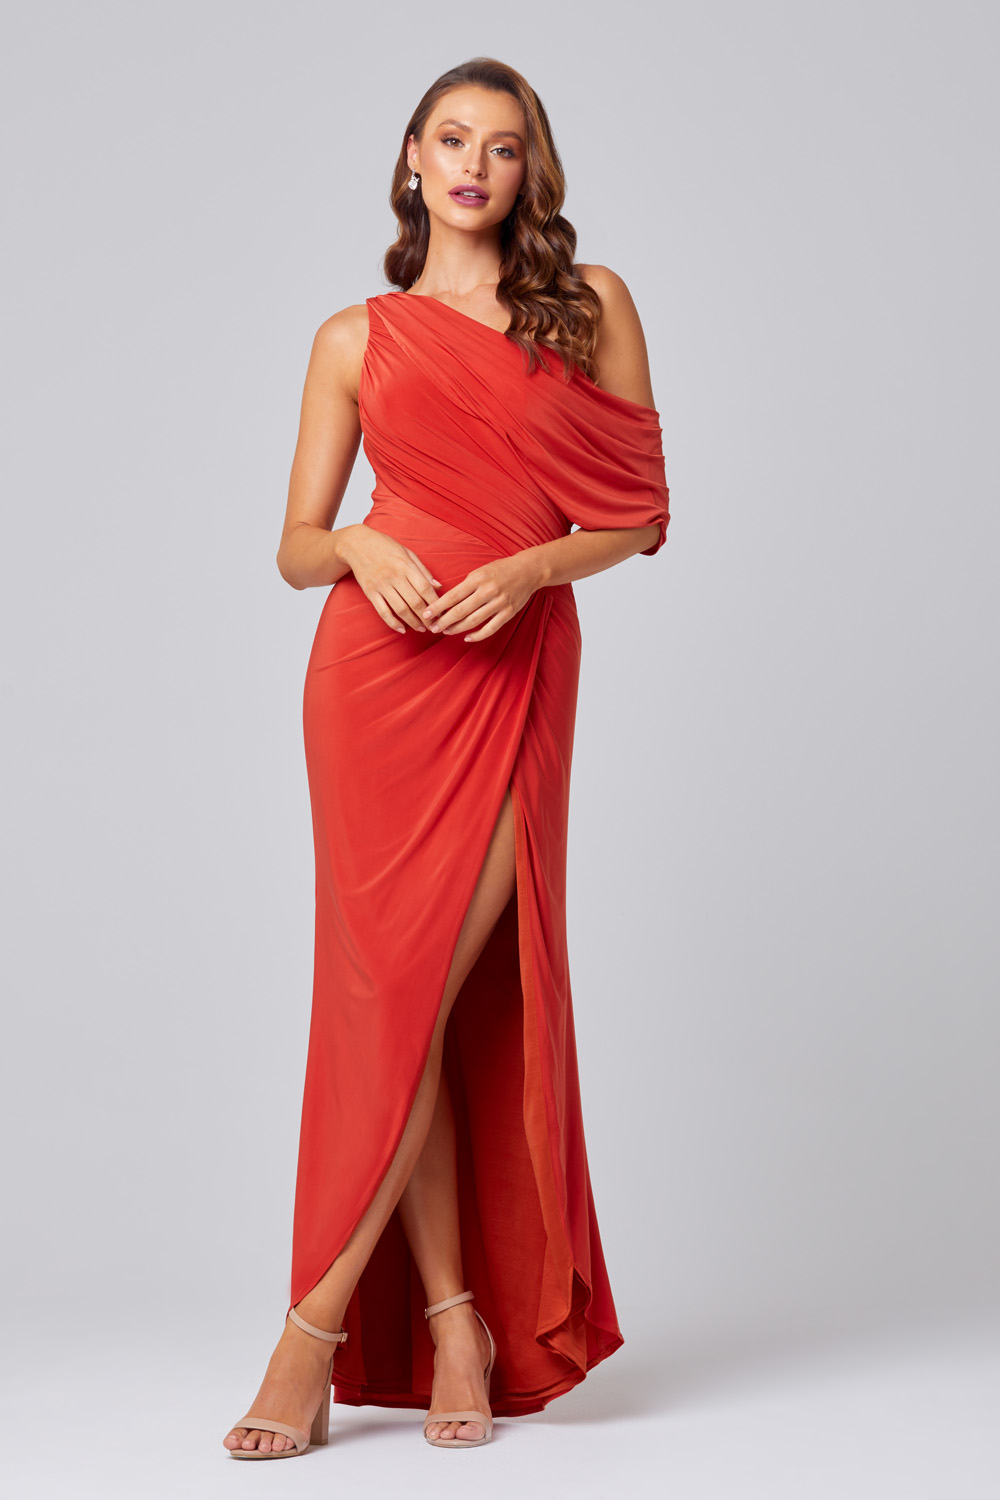 Polly One Shoulder Bridesmaid Dress – TO846